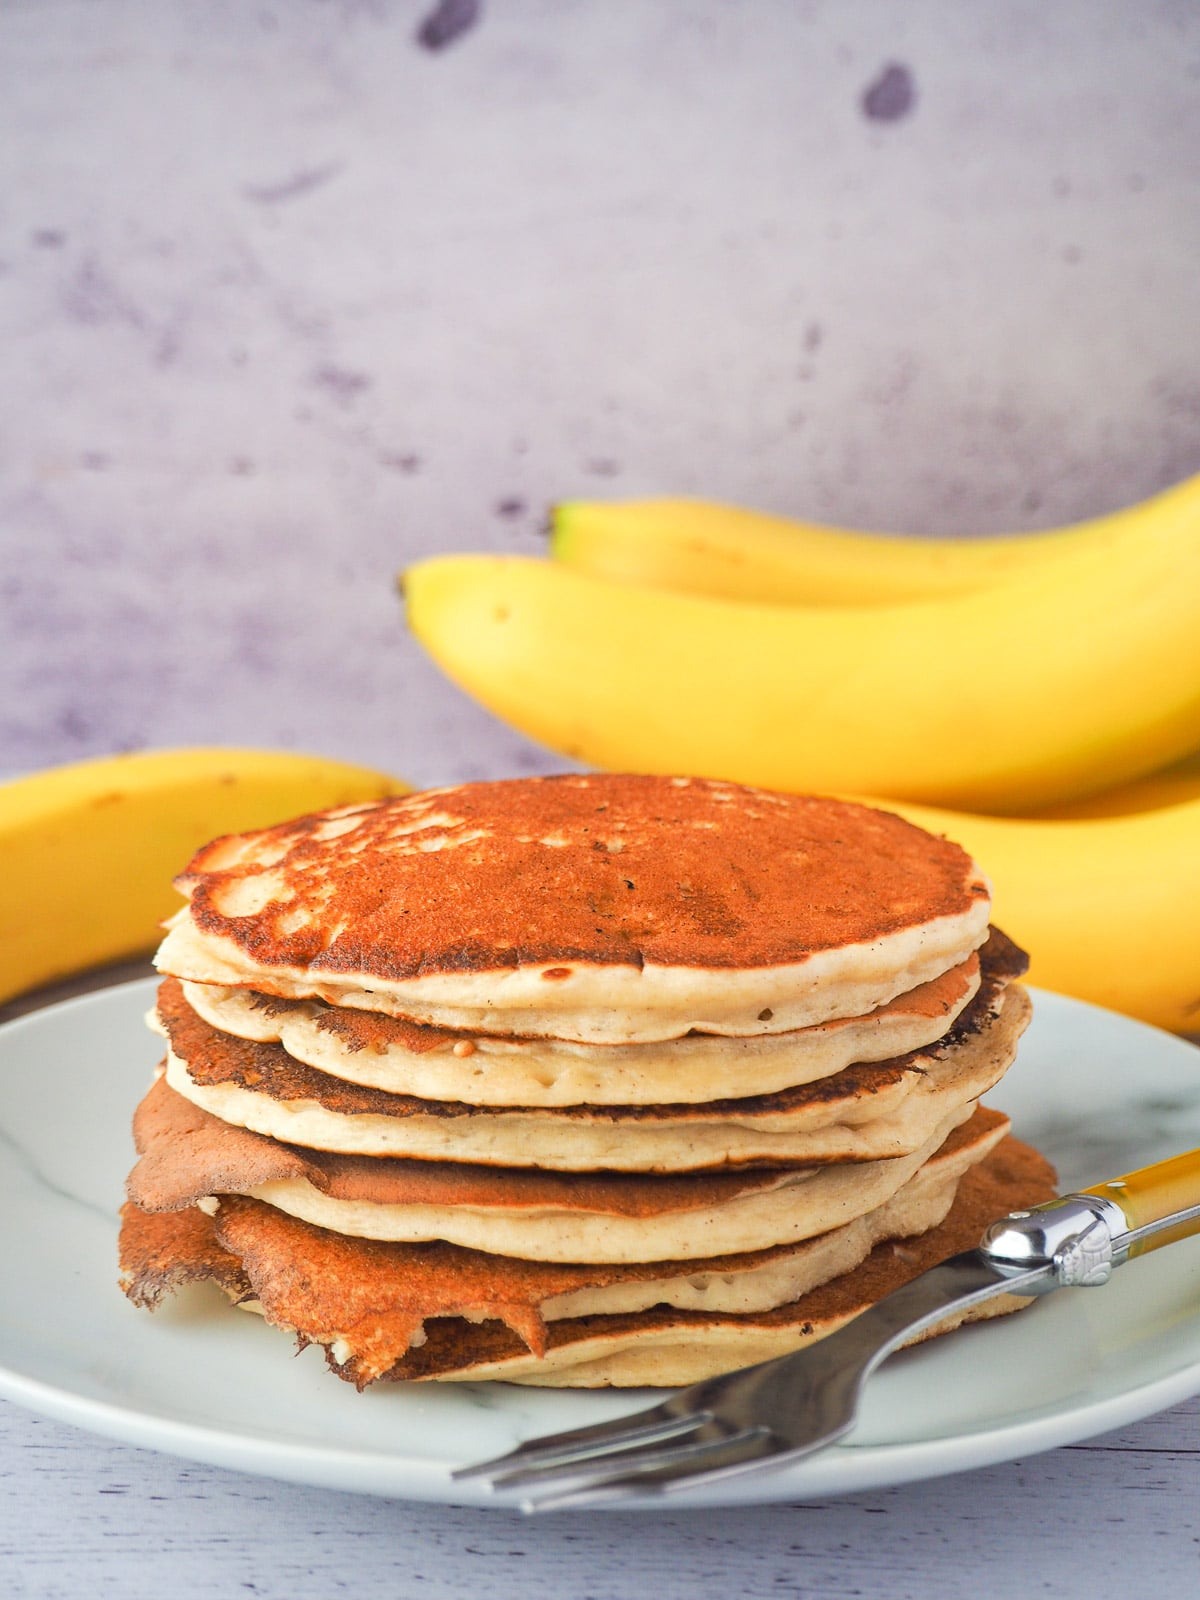 Stack of banana pikelets on a plate, with a vintage spoon on the side, surrounded by fresh whole bananas.